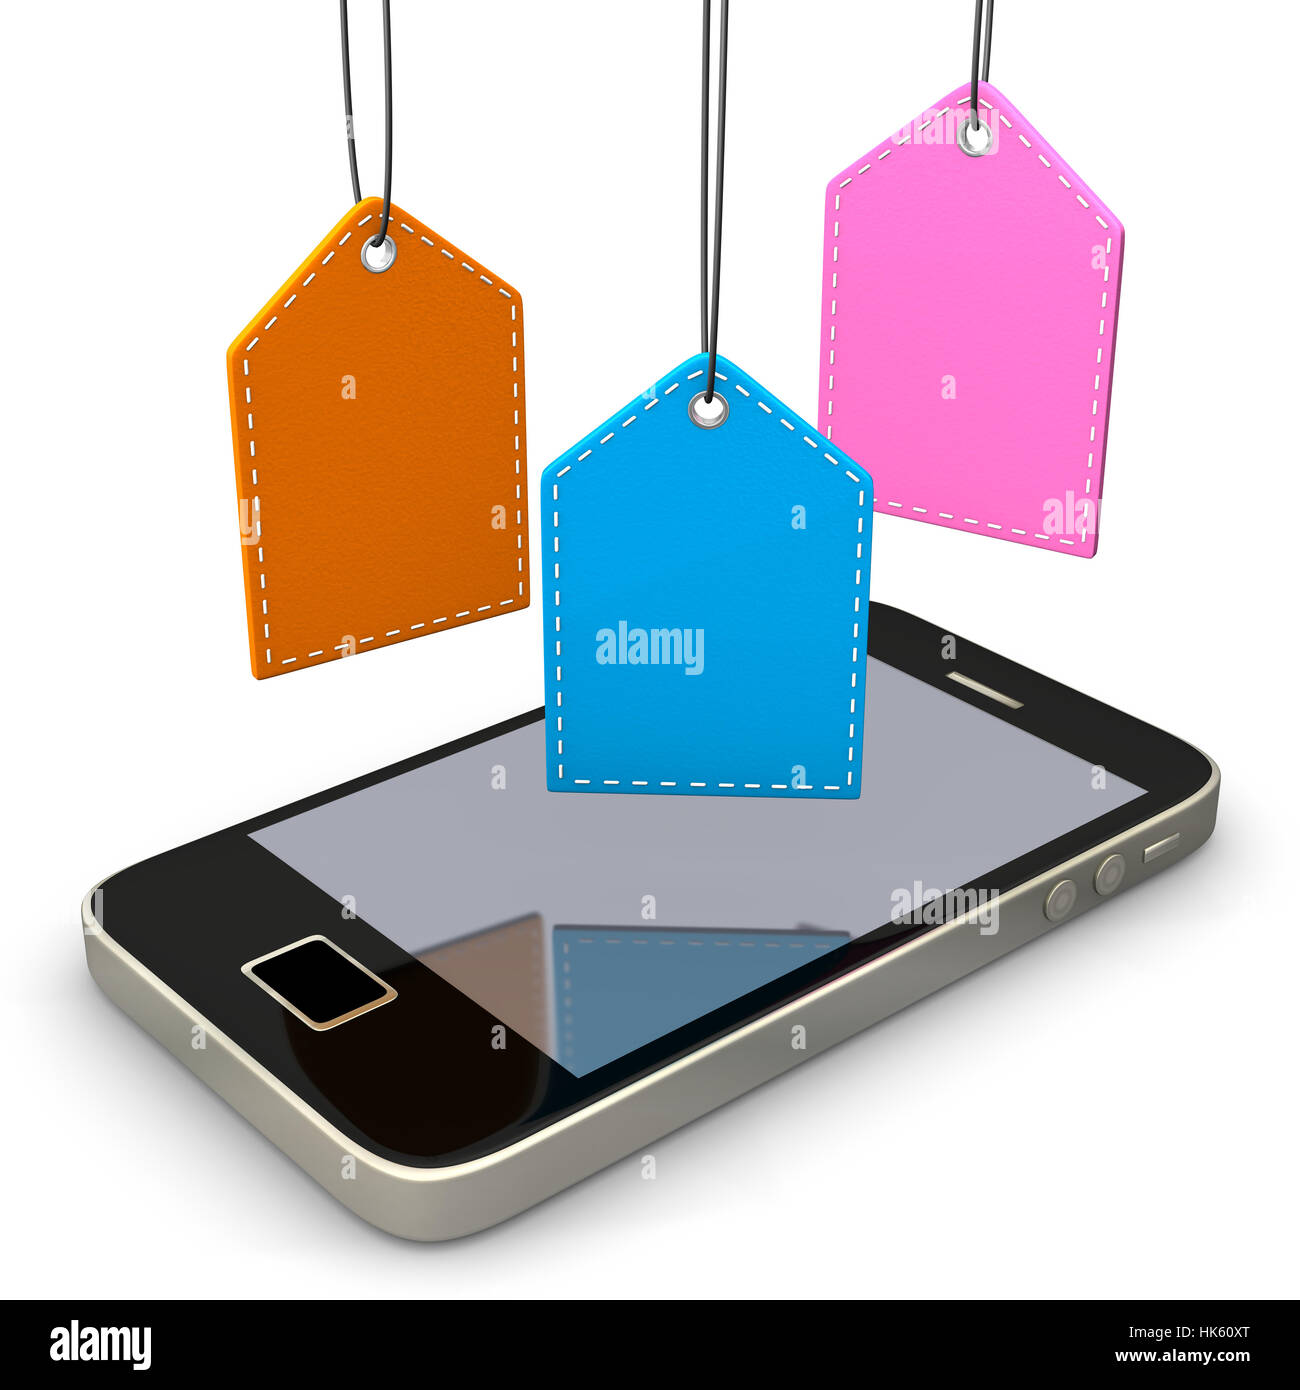 telephone, phone, PC, computers, computer, fashion, colour, illustration, - Stock Image